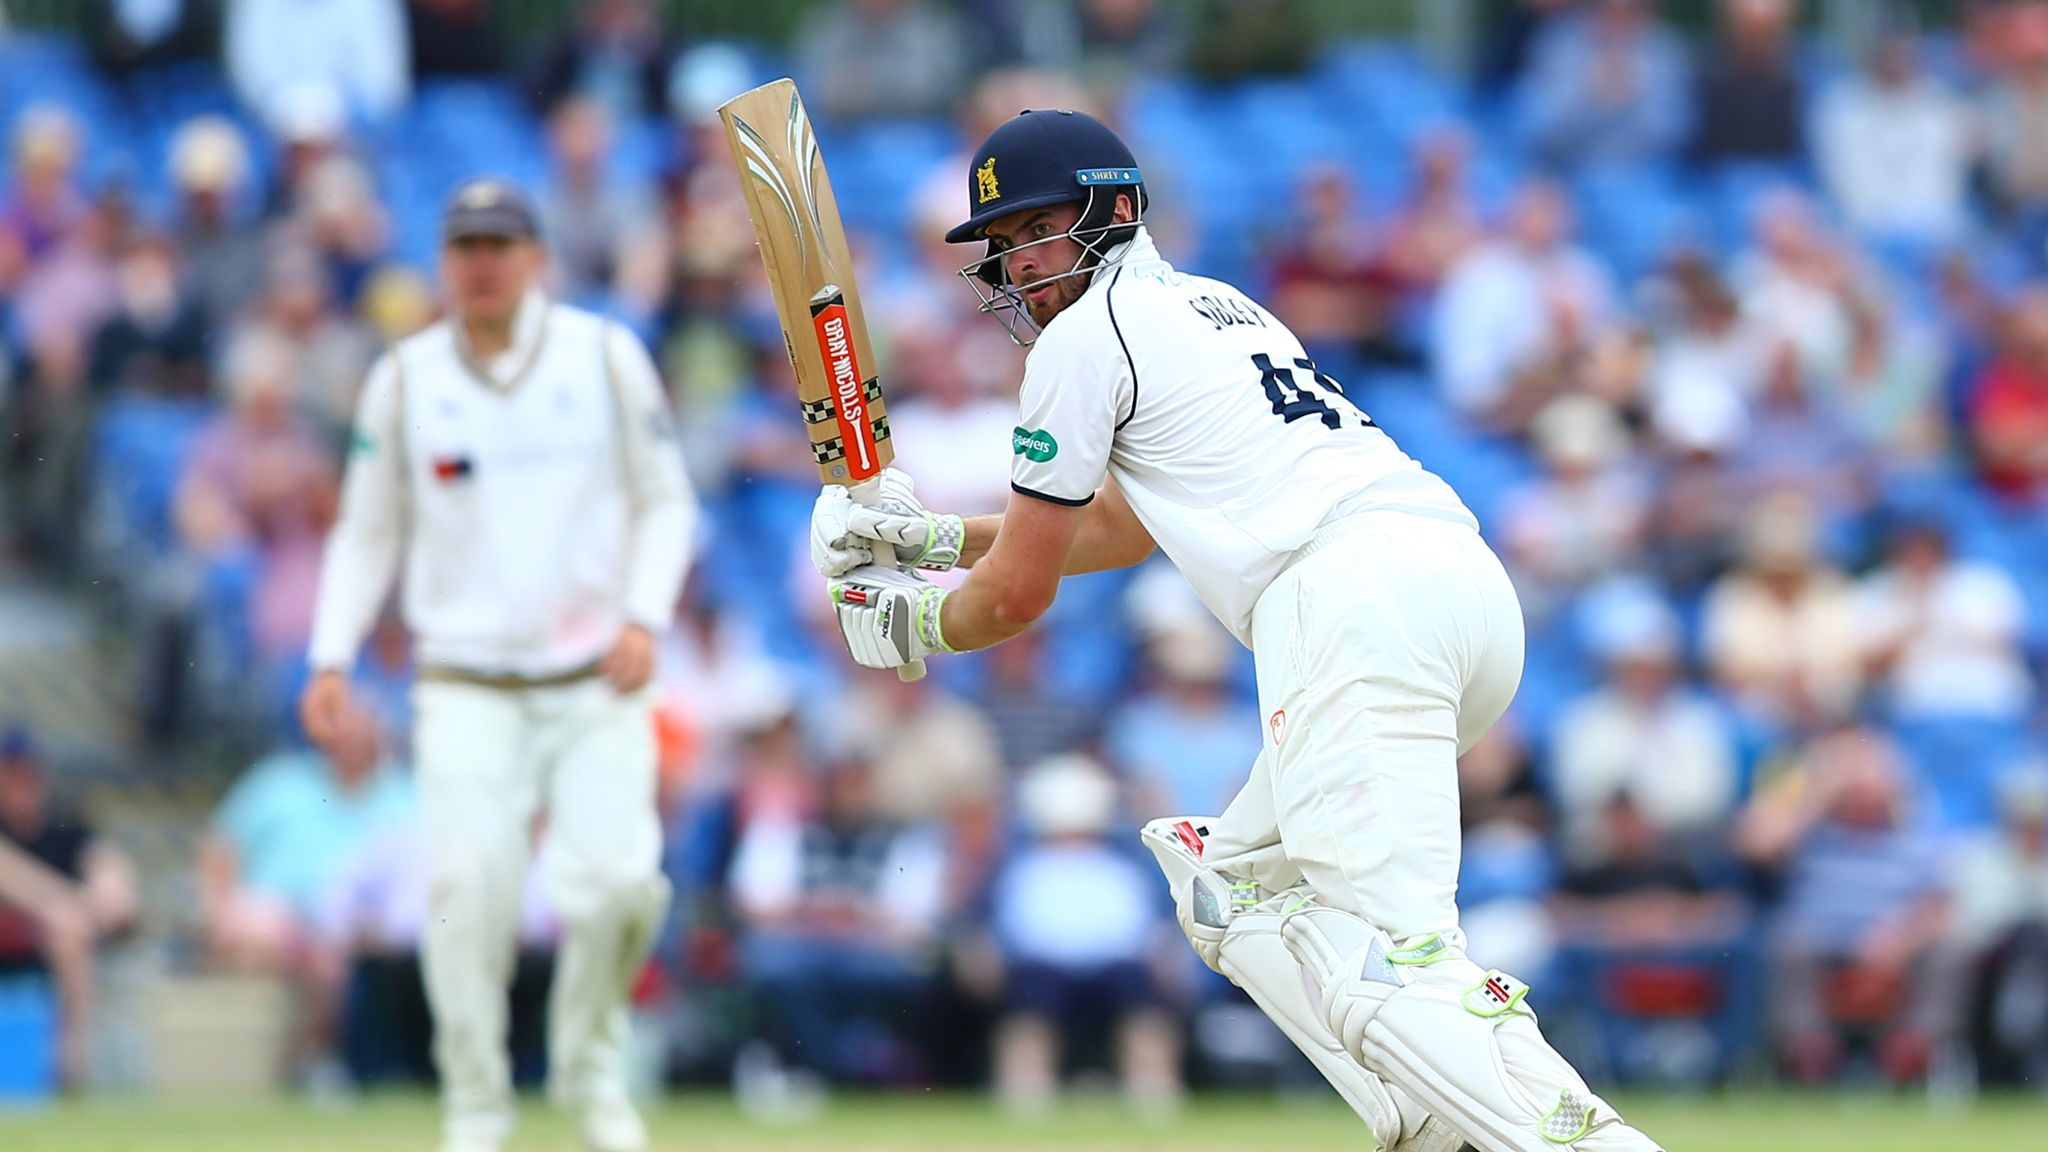 Dom Sibley says watching Ashes made him 'hungry' to play for England